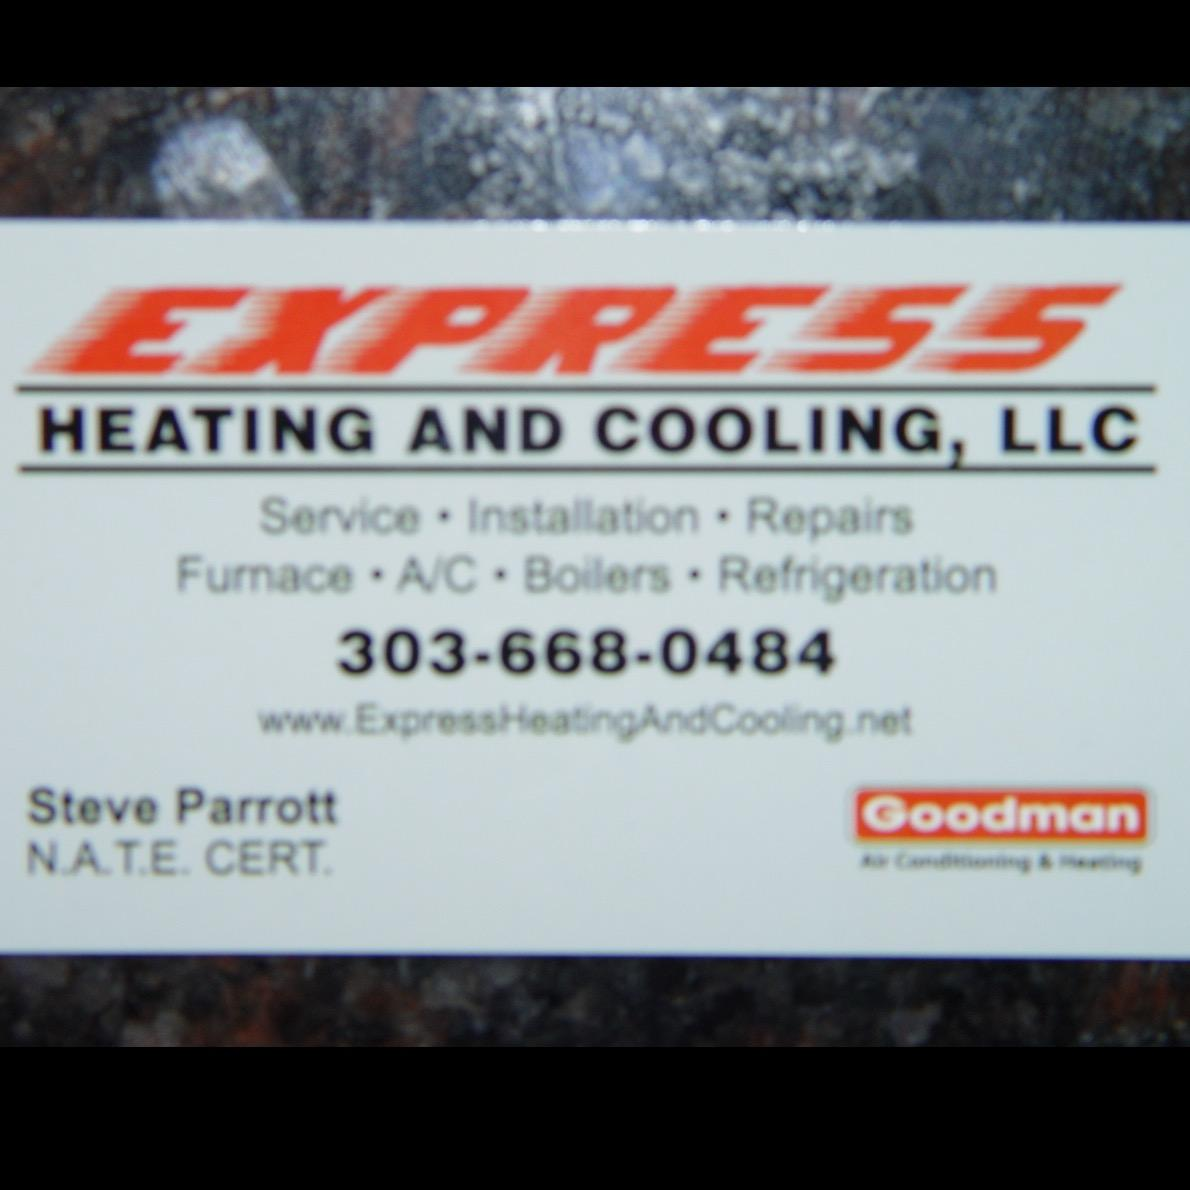 Express Heating and Cooling